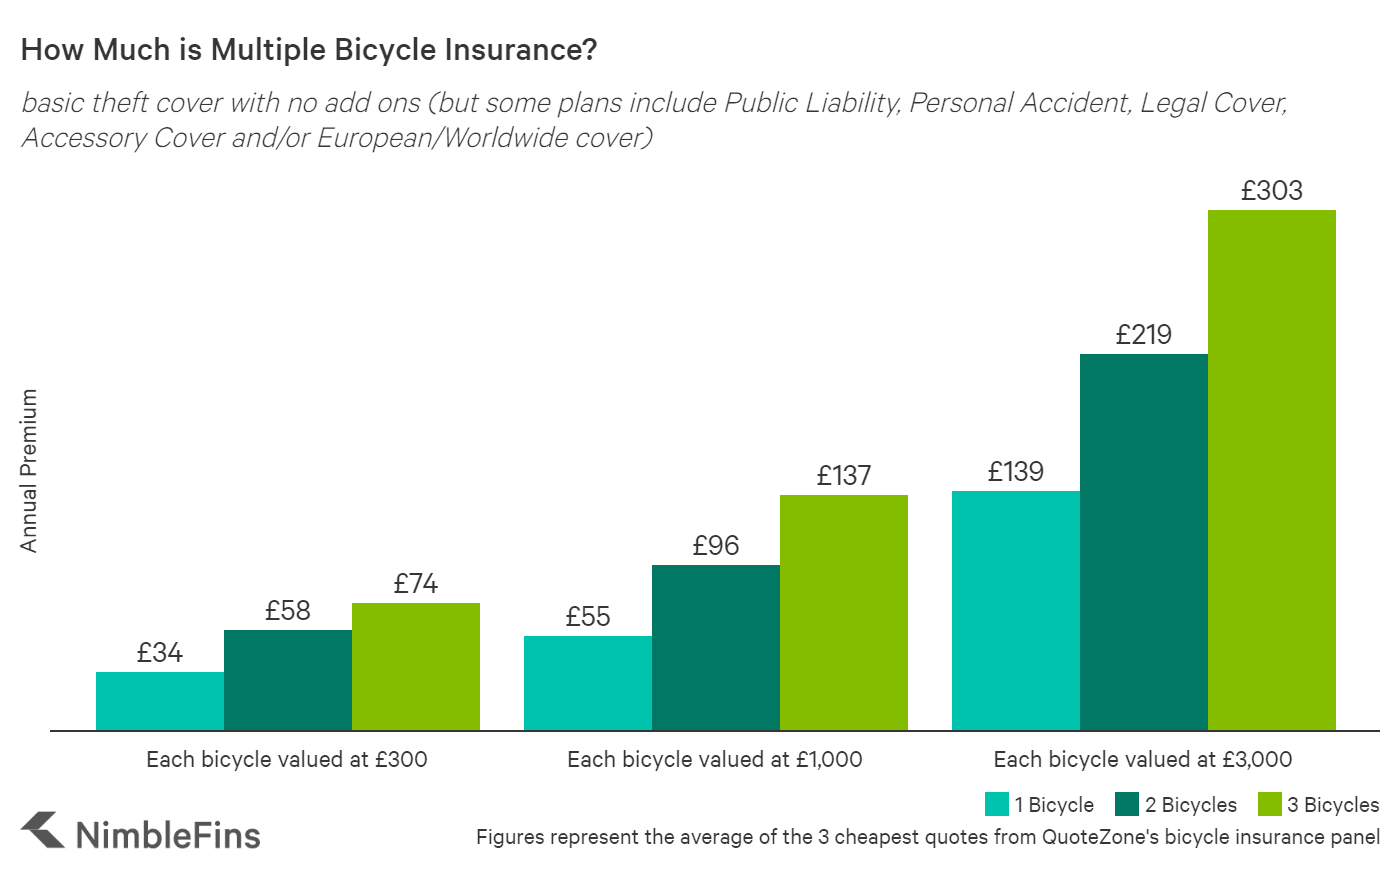 Chart showing the cost of bicycle insurance in the UK